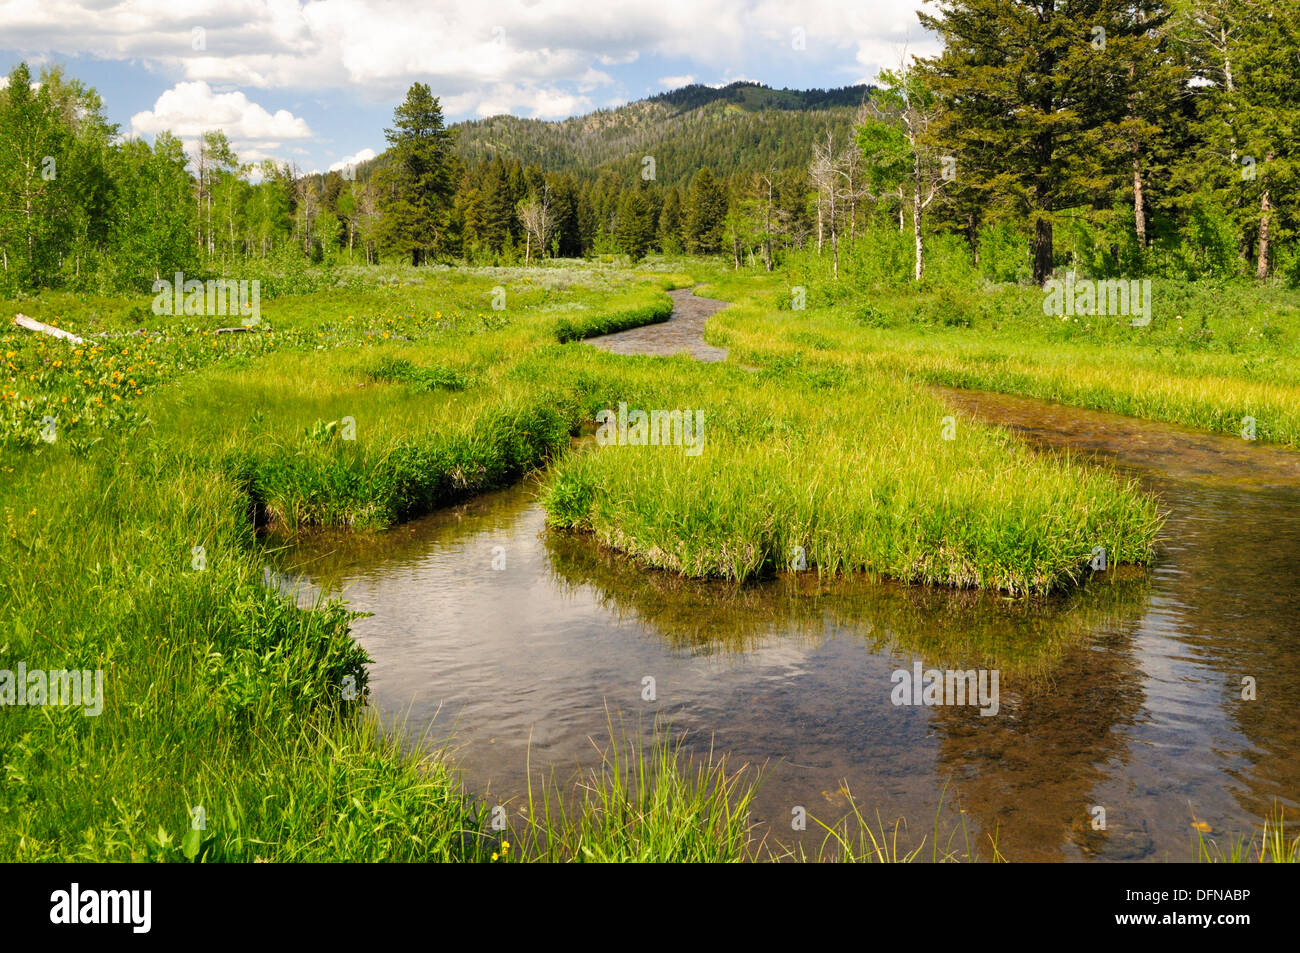 Curved creek forms loop and flows through green meadow - Stock Image